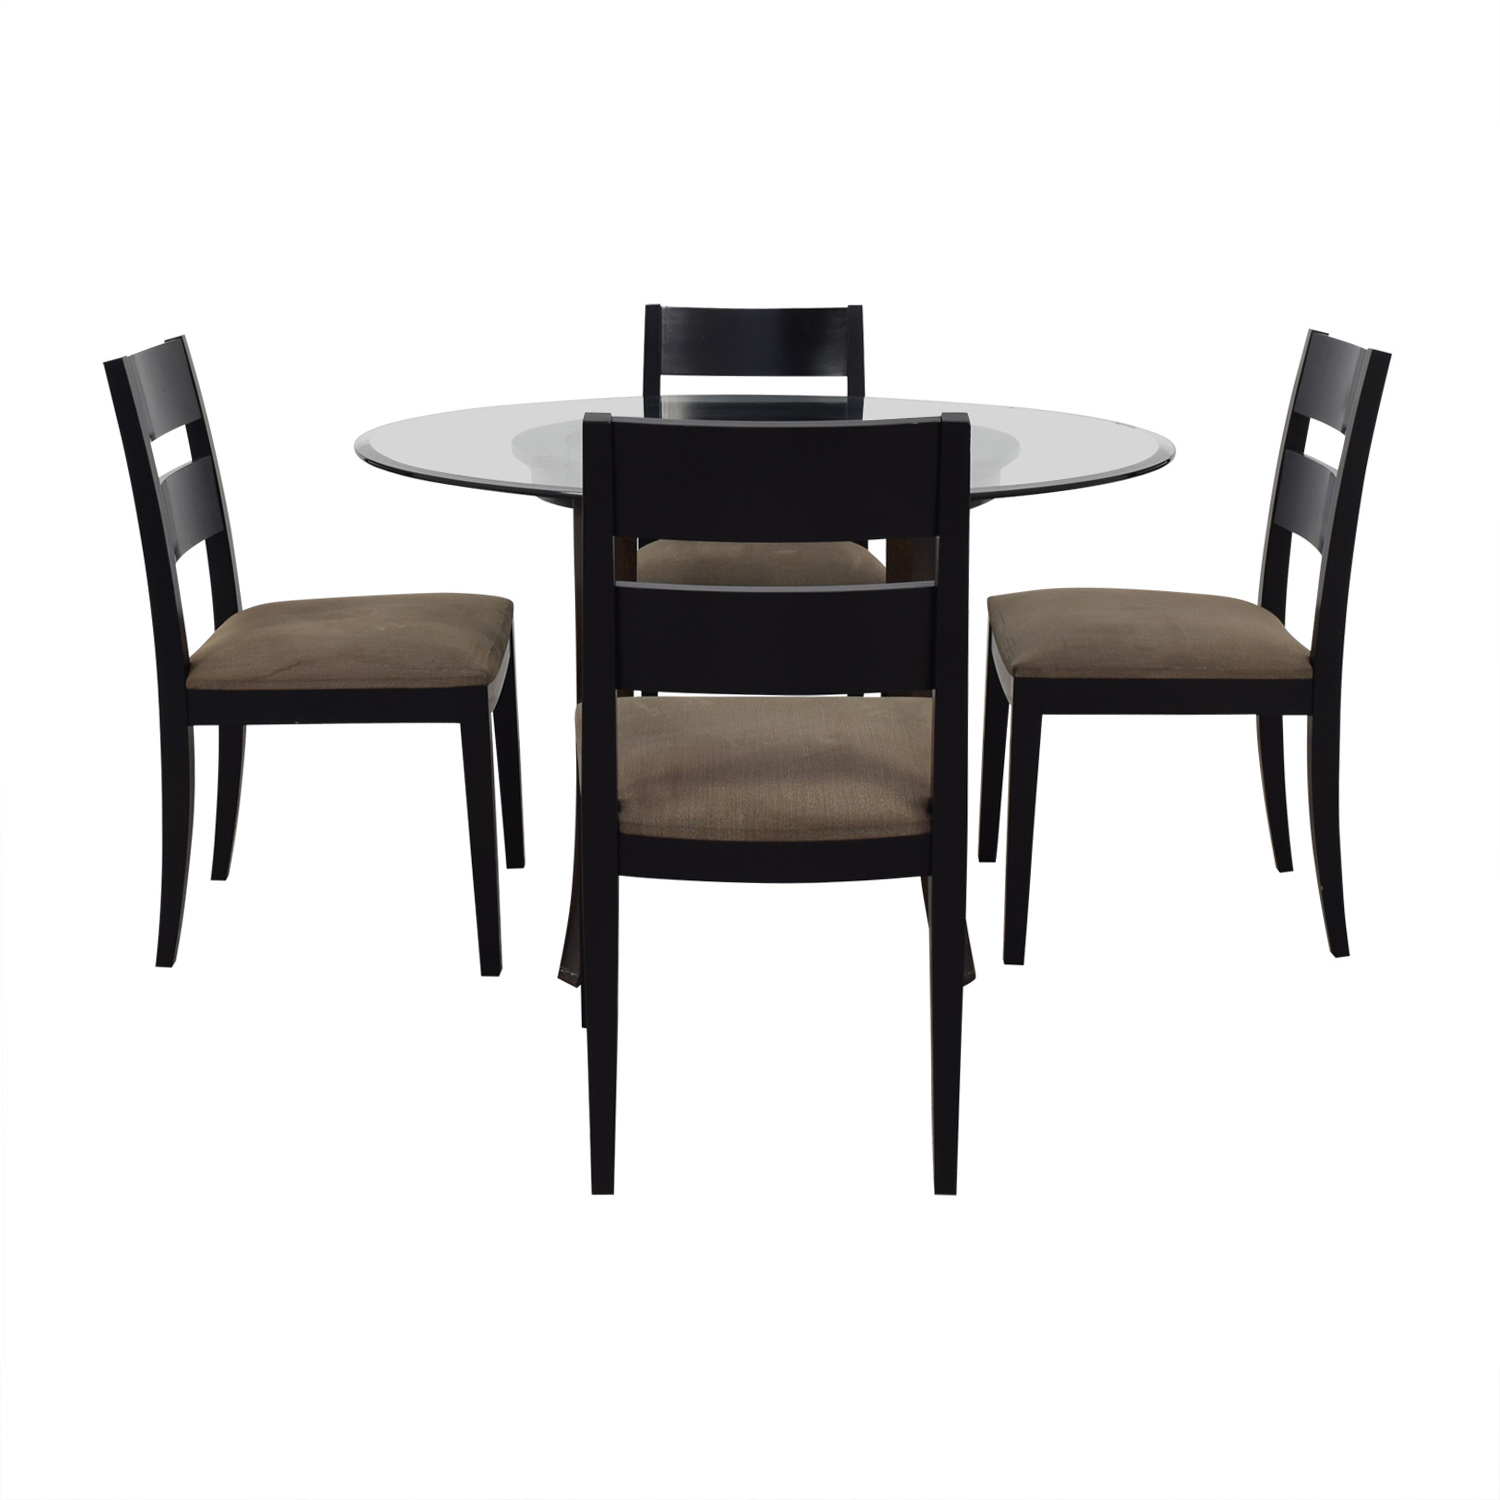 Crate & Barrel Crate & Barrel Halo Table With Basque Upholstered Chairs price